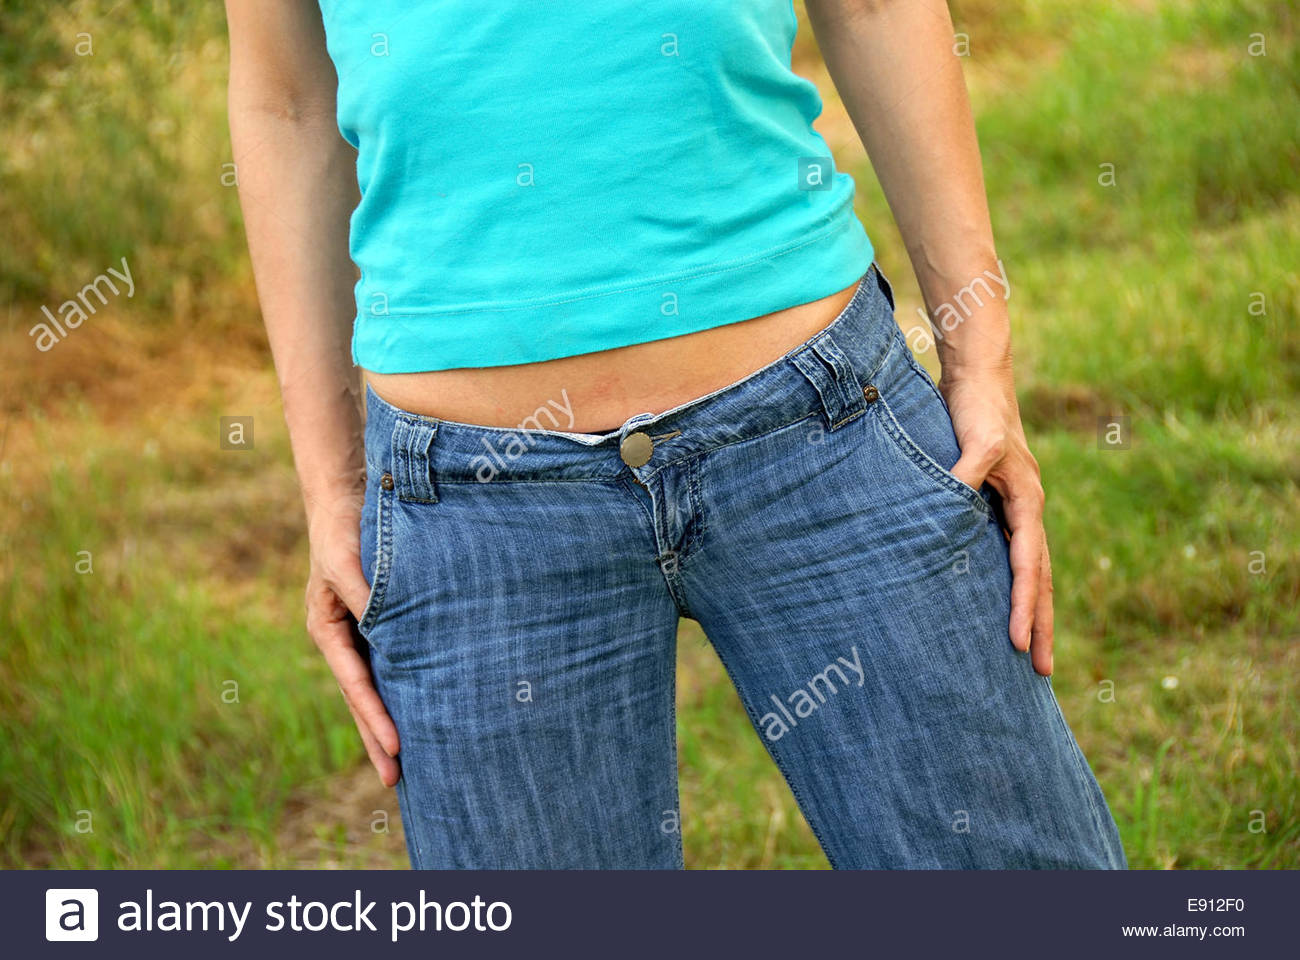 Slim woman body part - Stock Image